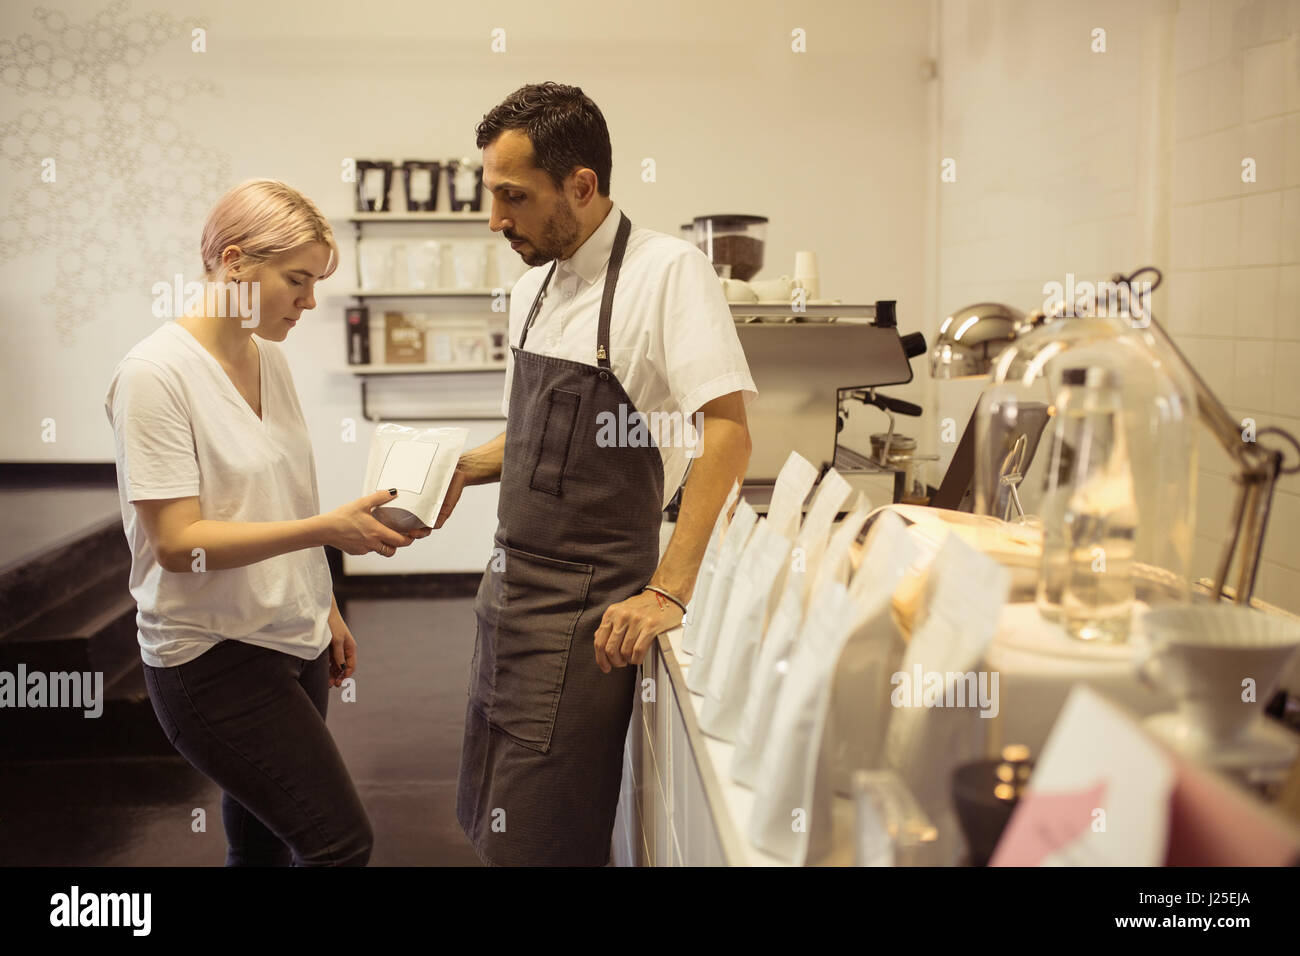 Male and female barista checking packaging of coffee in coffee shop - Stock Image